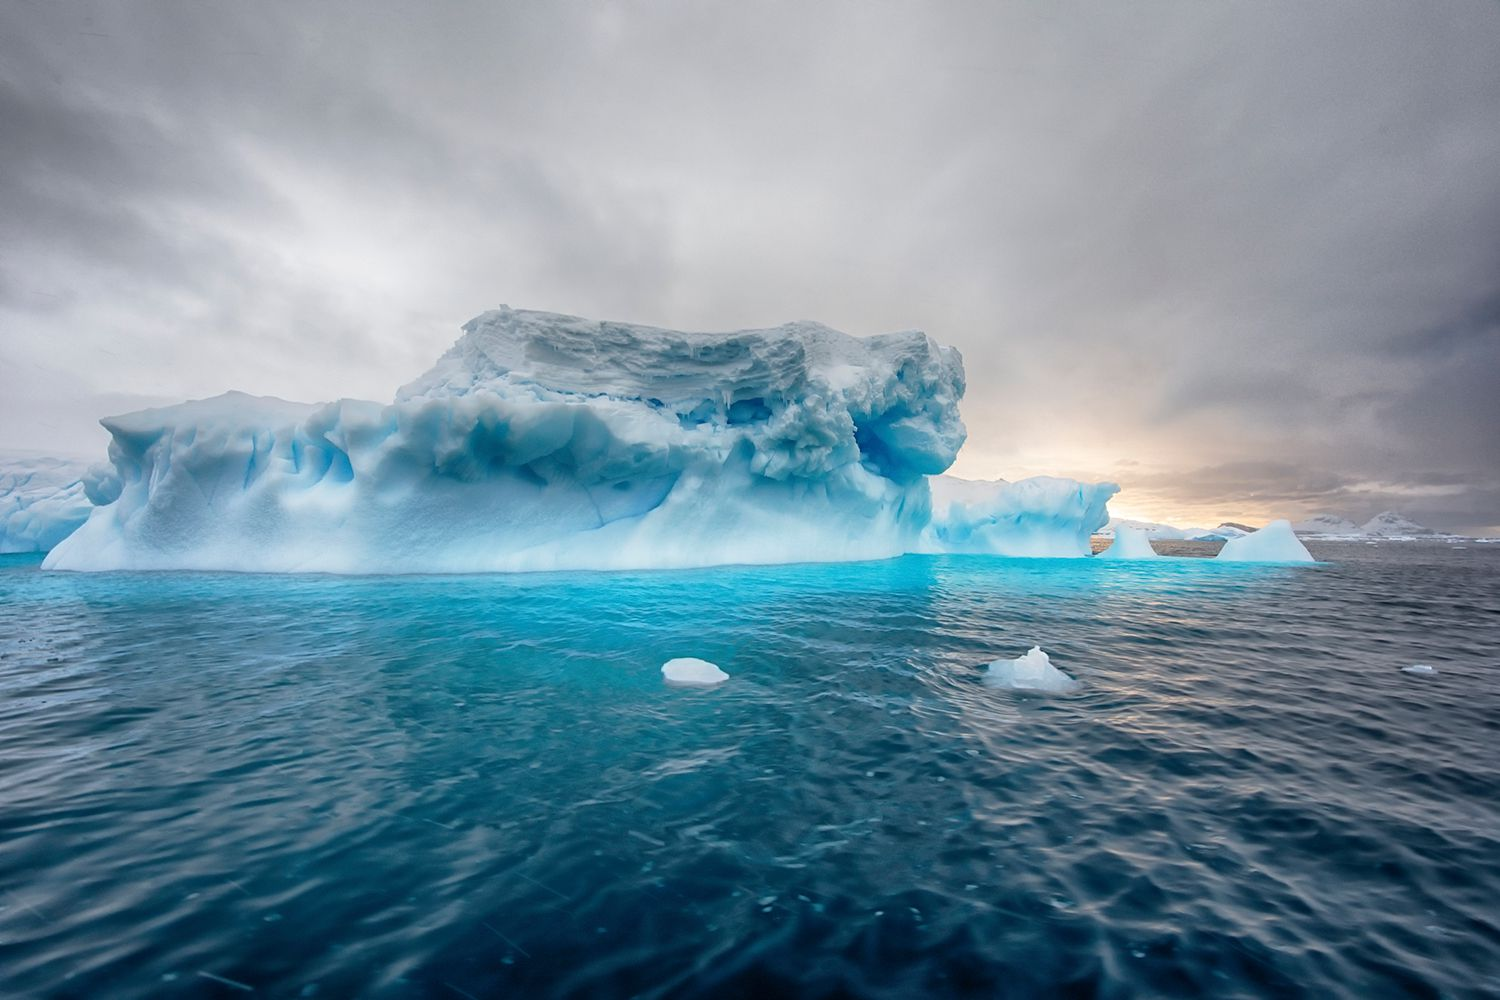 Are Icebergs Made of Fresh Water or Salt Water